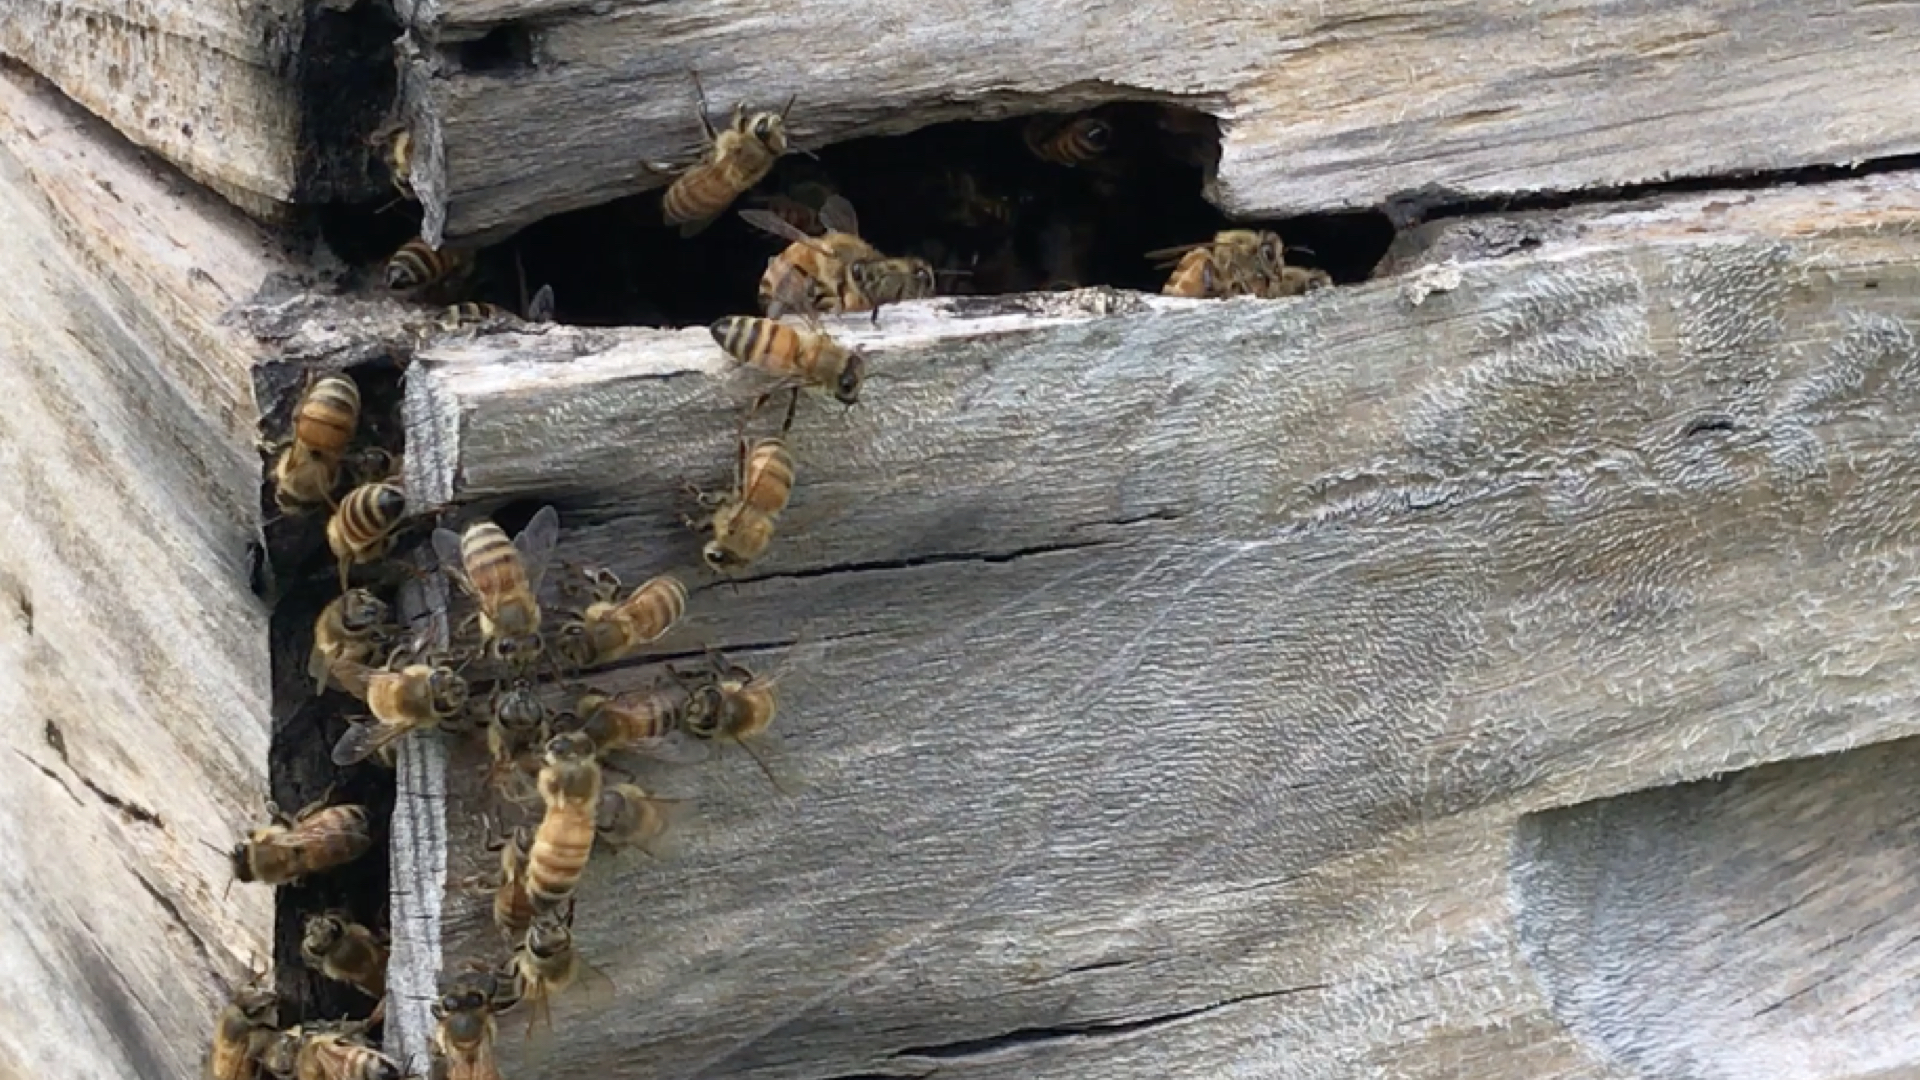 """What the bees display is love and unity,"" says Japhet. He says his community can learn lessons about how the bees work together. With logging and mining continuing to cause land disputes on Rennell, Japhet says the message of resilience and community is urgently needed."